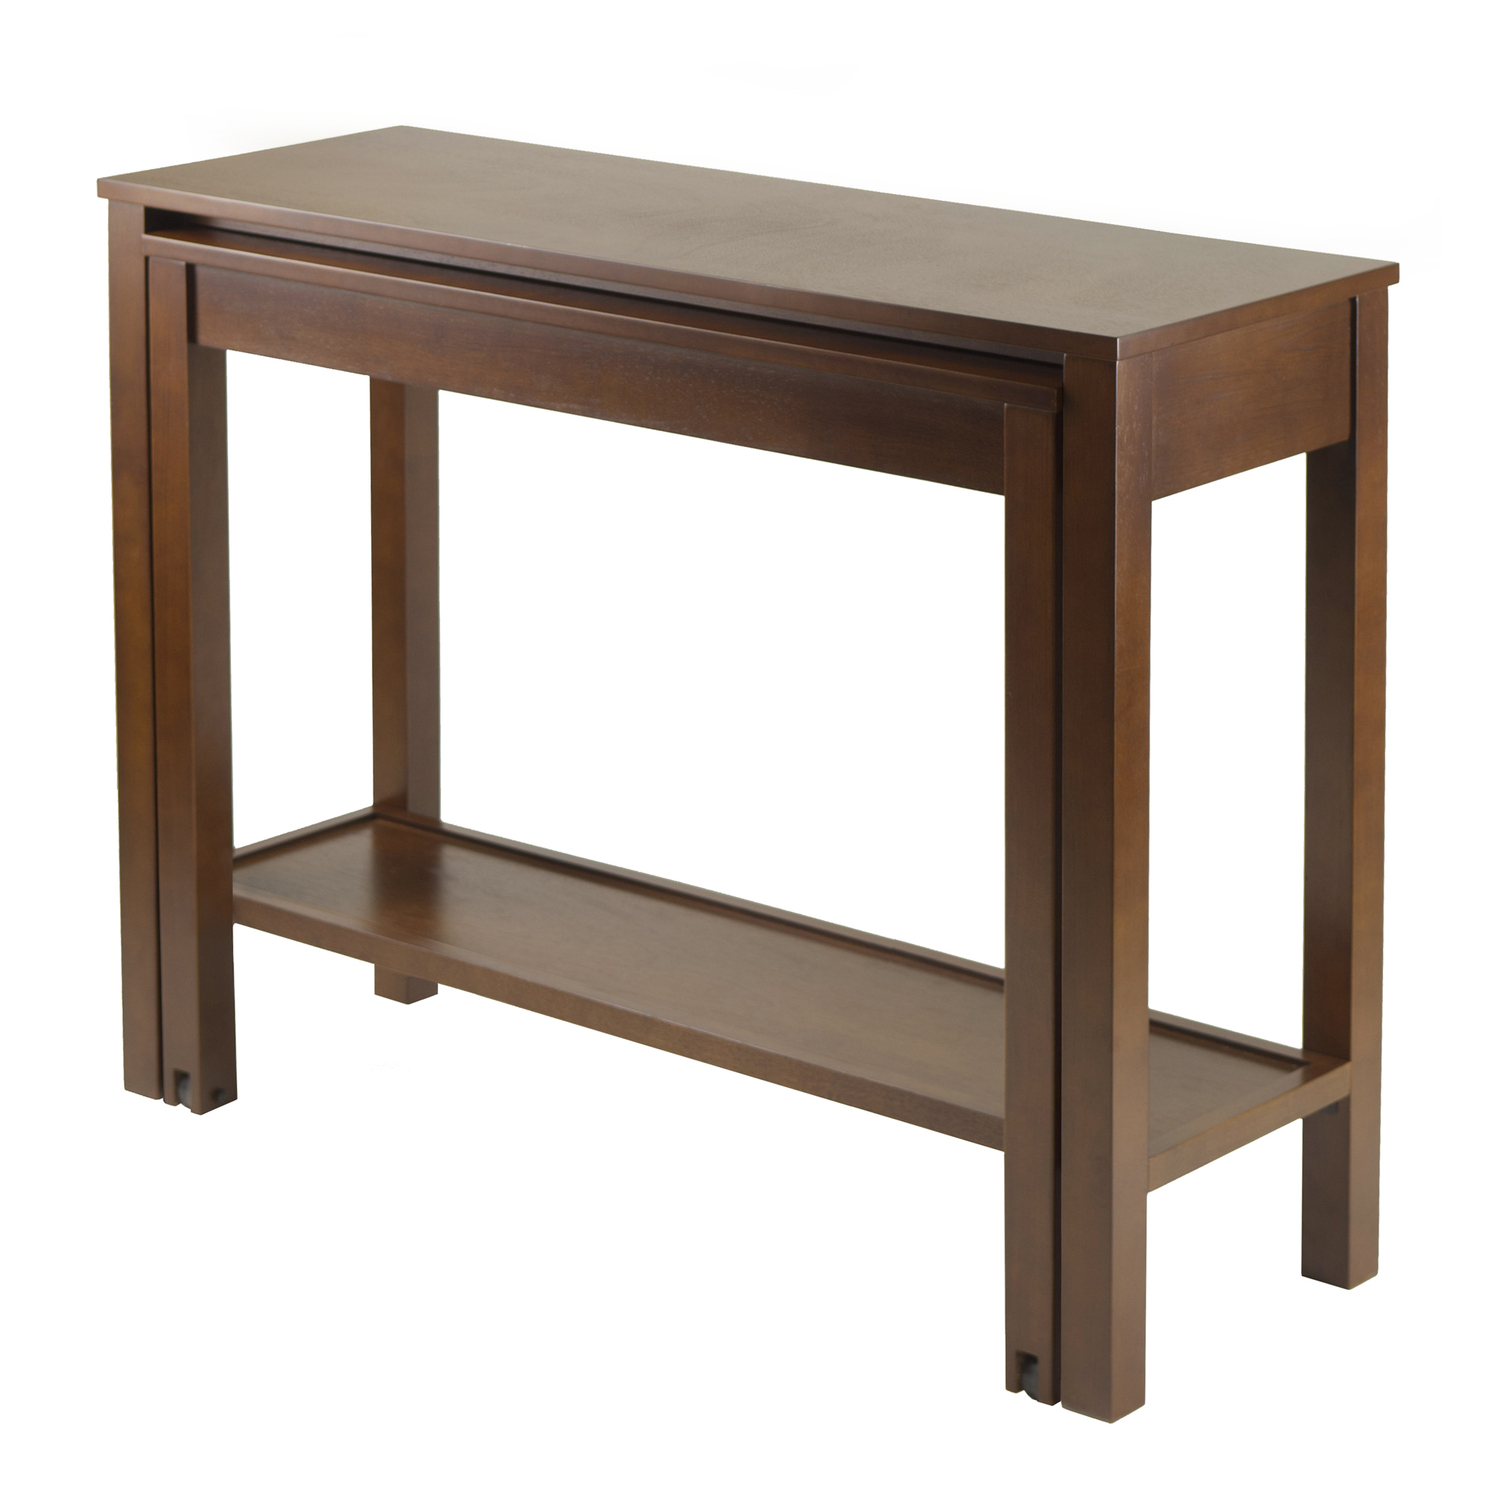 Expandable console tables image collections coffee table design ideas Console coffee table